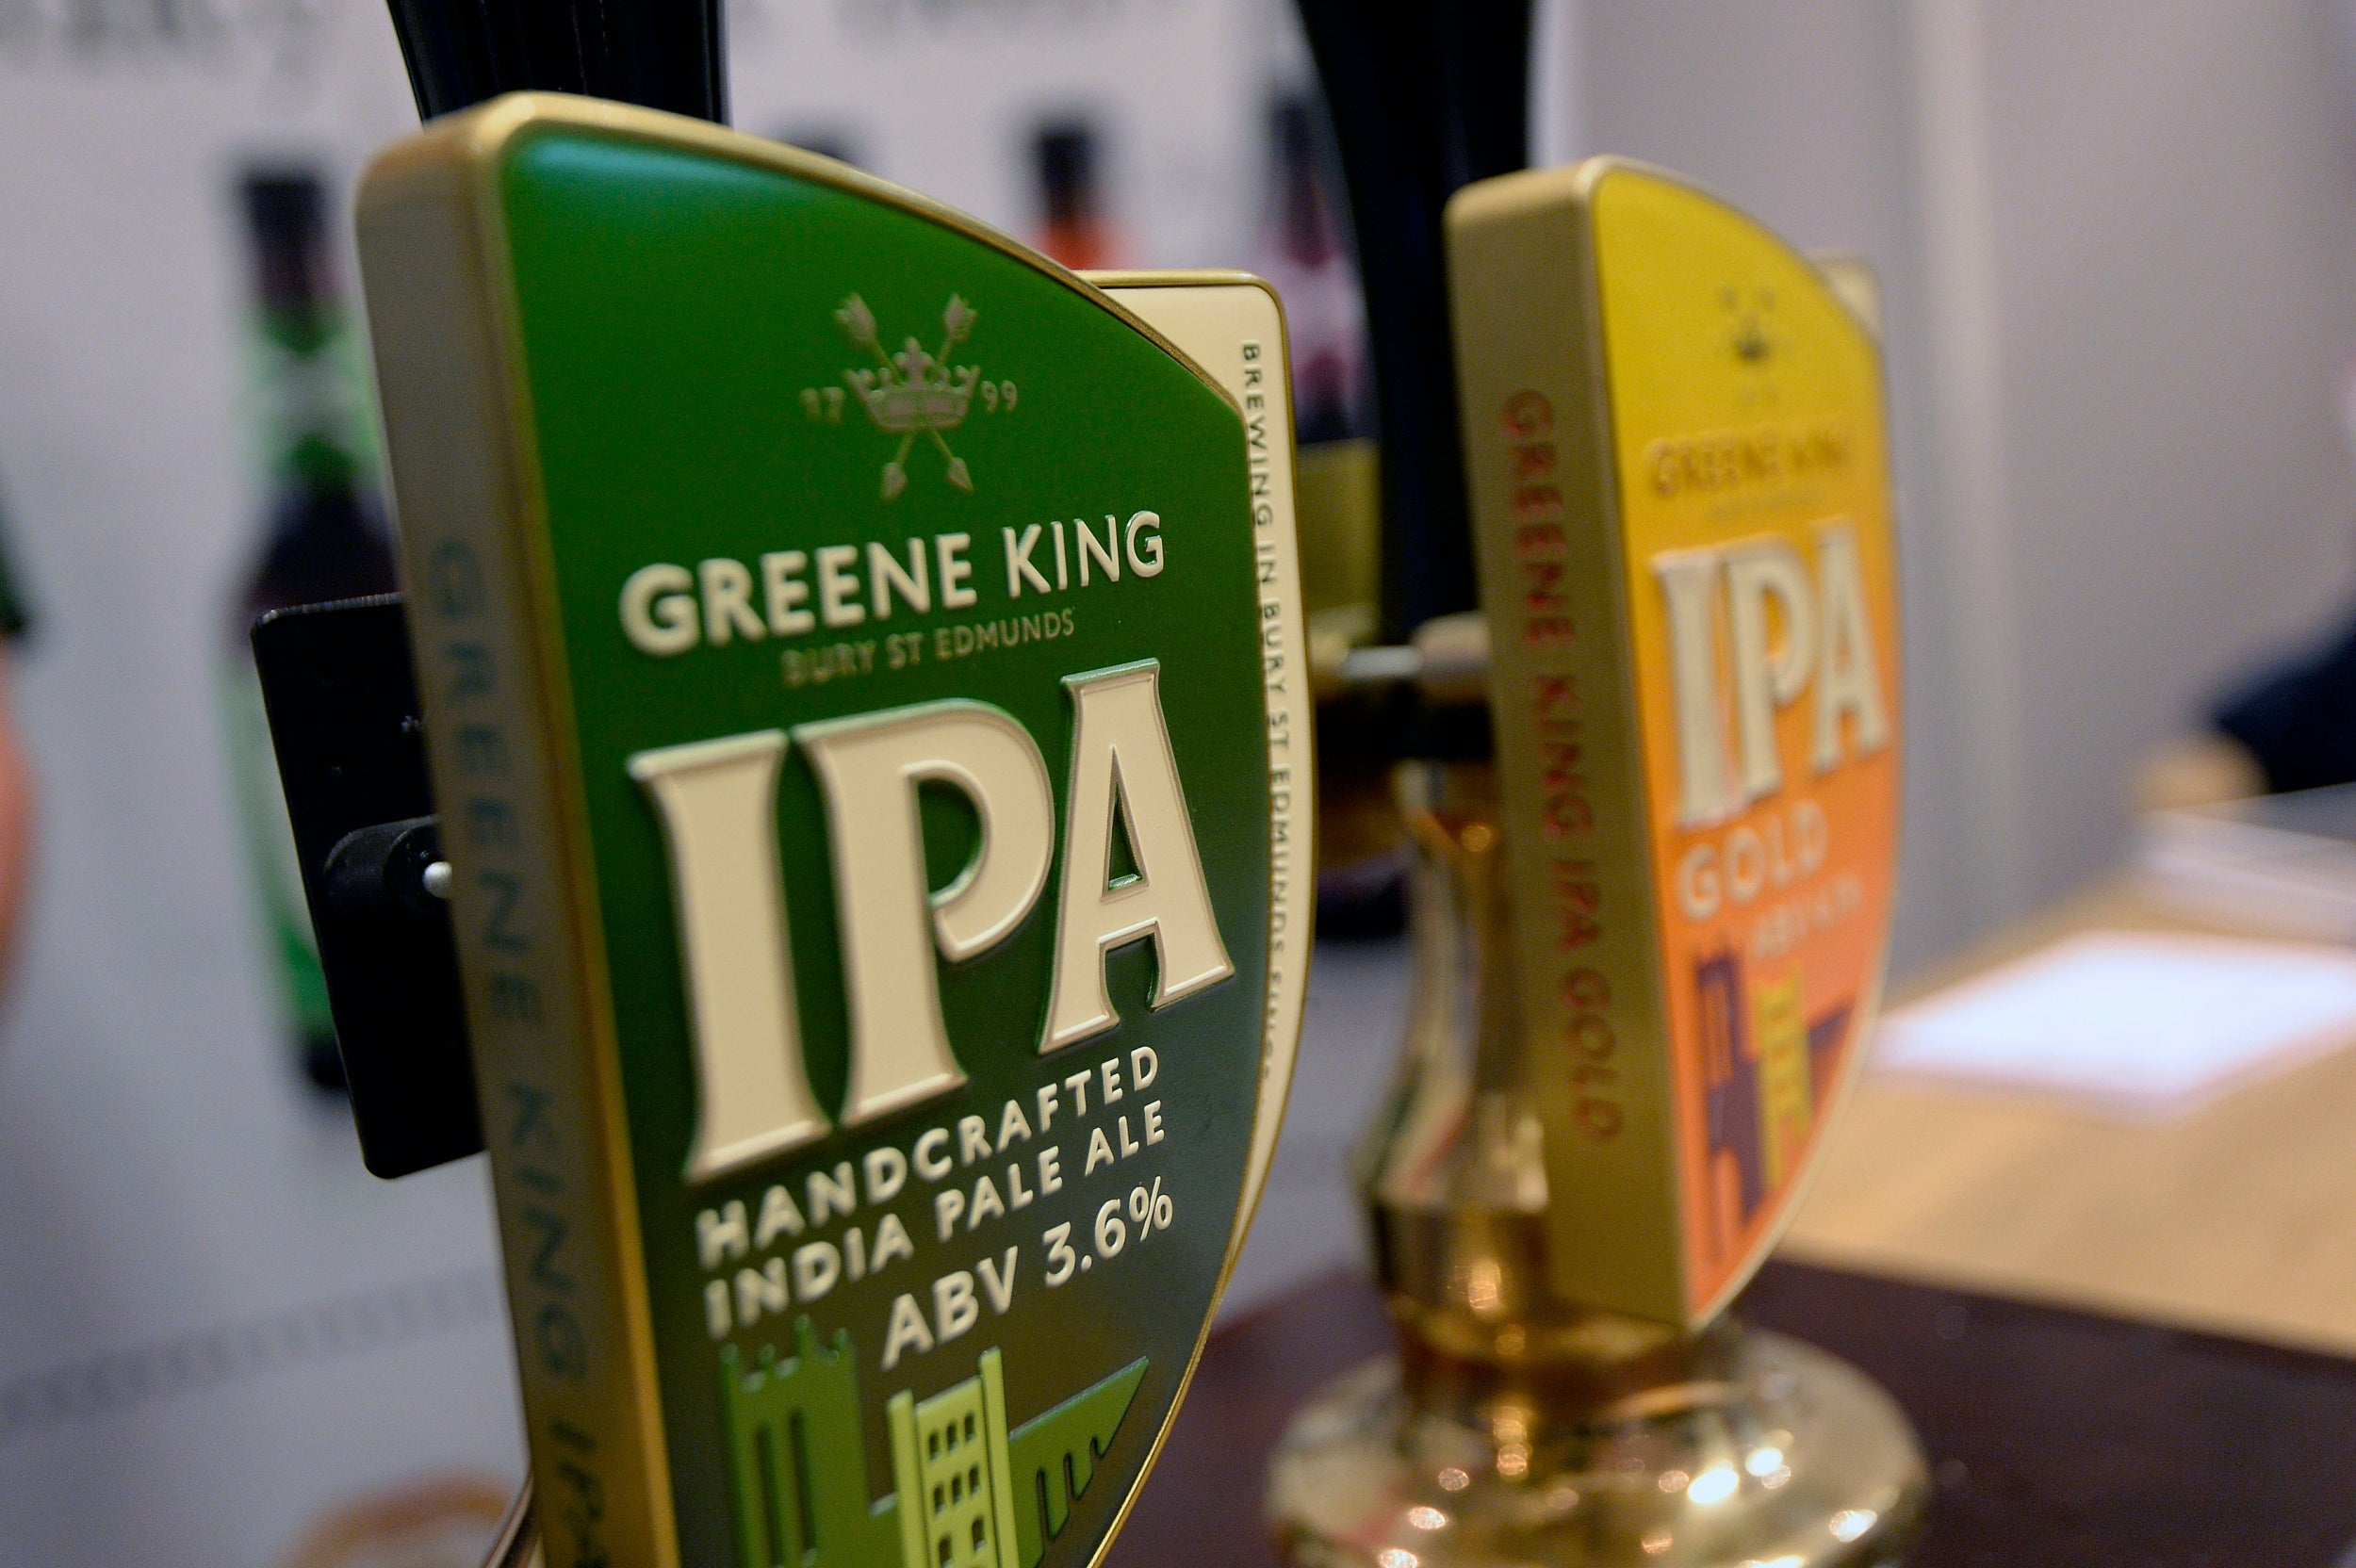 Green King buyout: UK's biggest pub owner to be bought by Hong Kong real estate group CKA